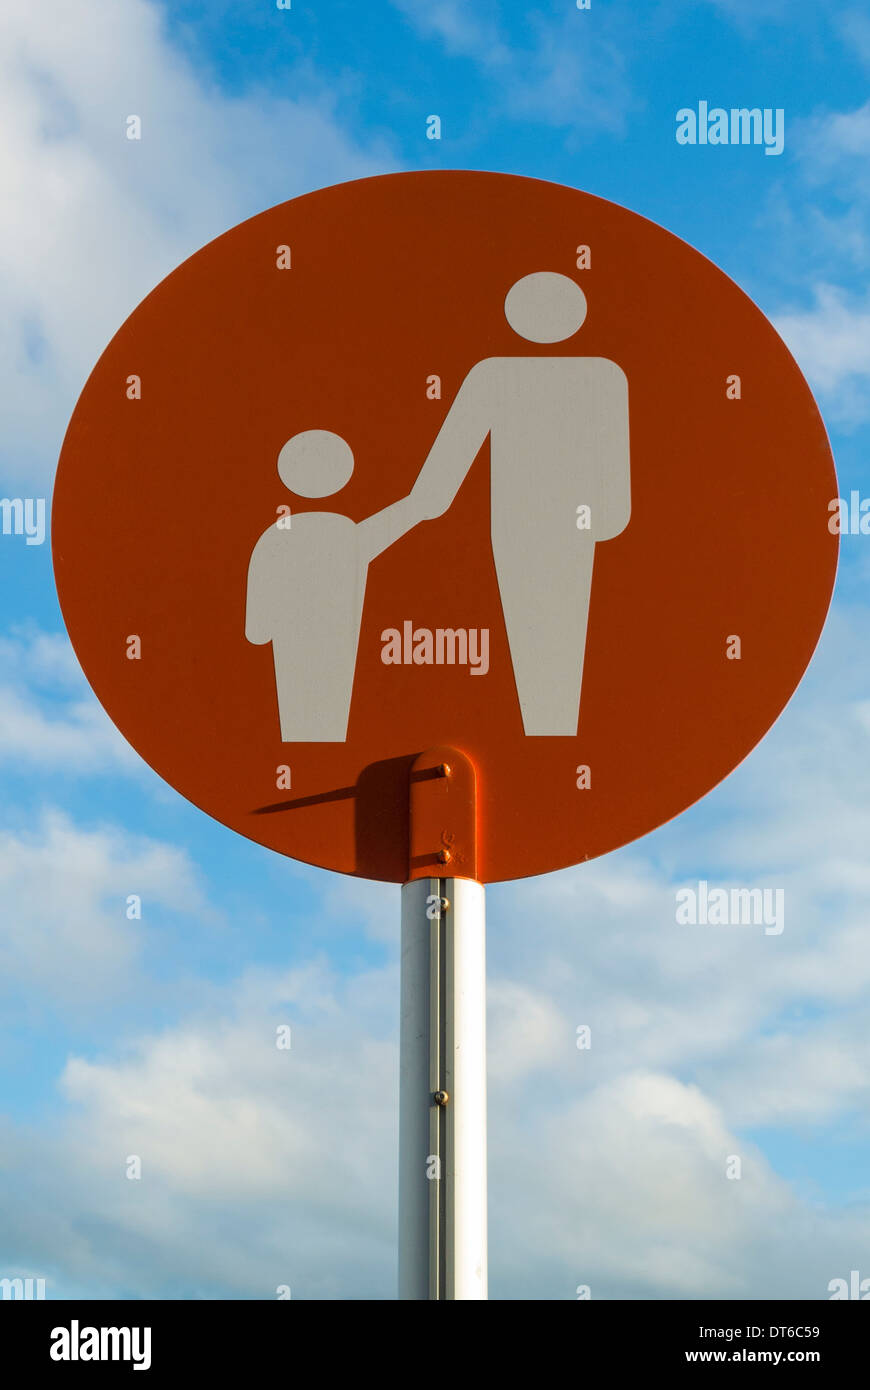 Child friendly parking sign at supermarket - Stock Image